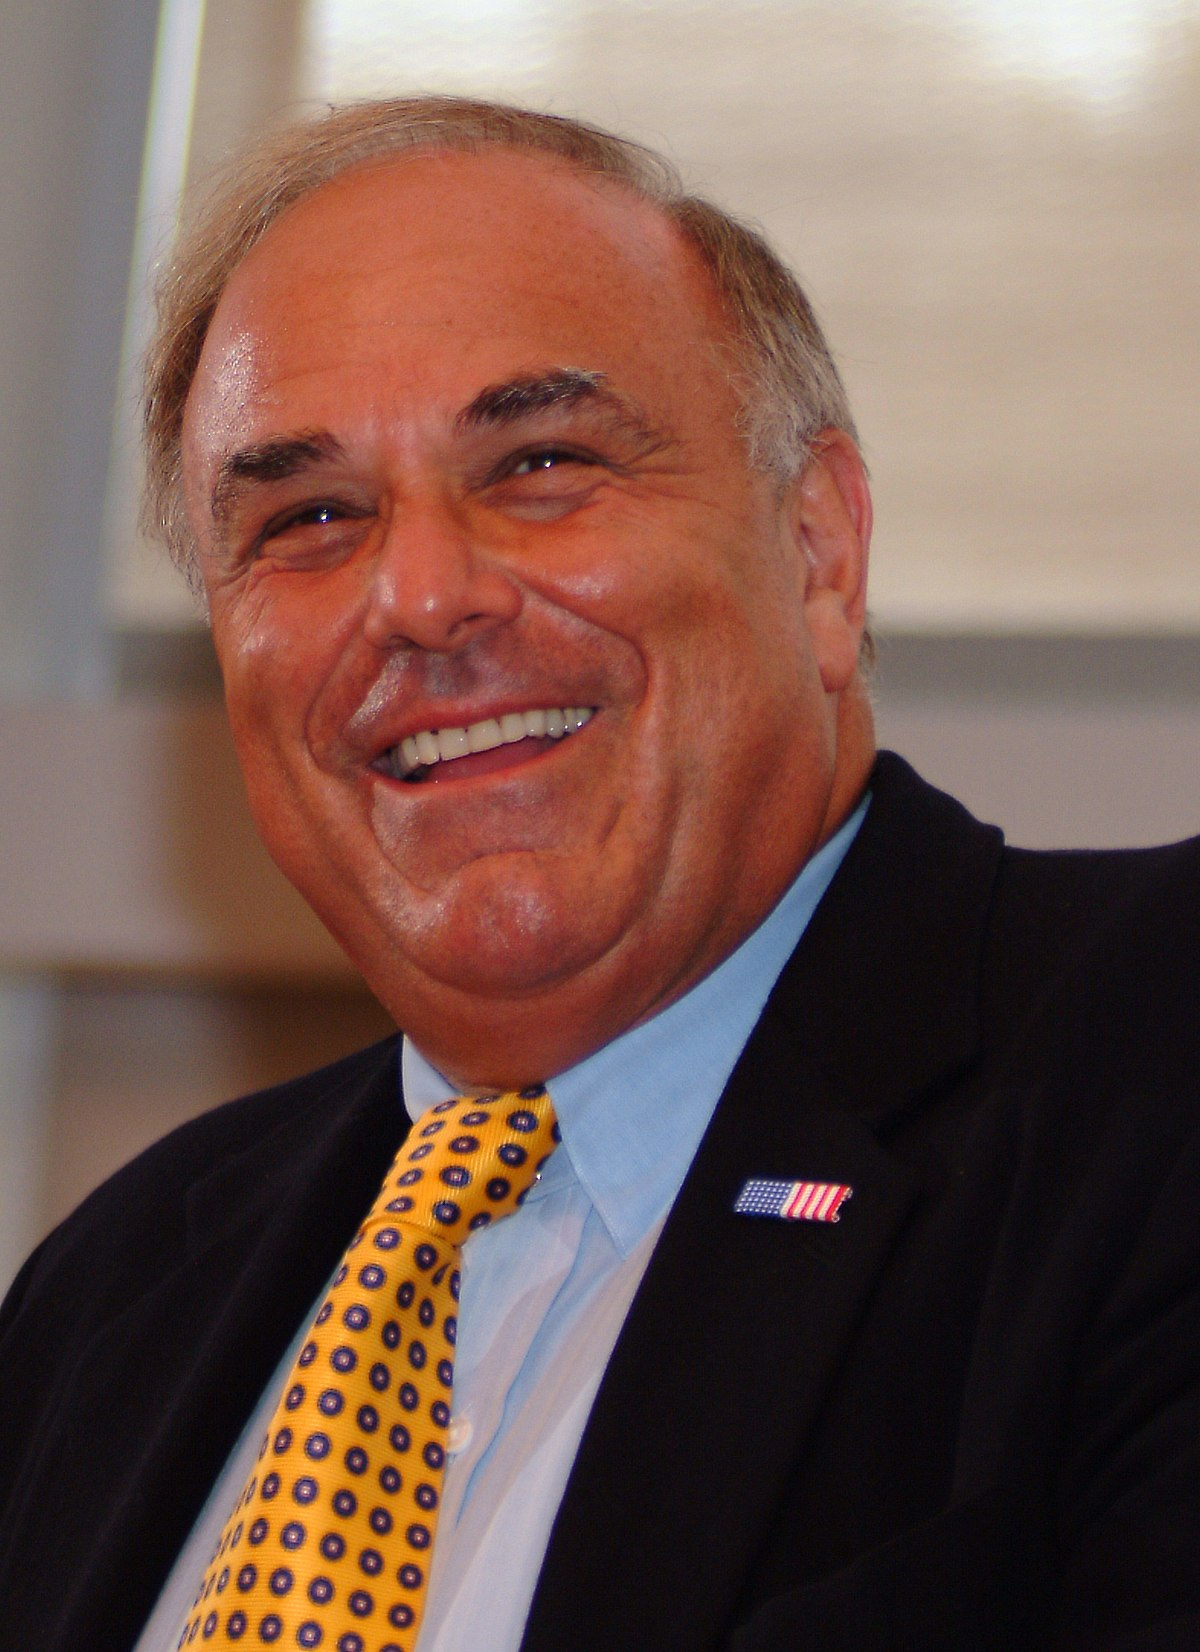 Ed Rendell Wikipedia